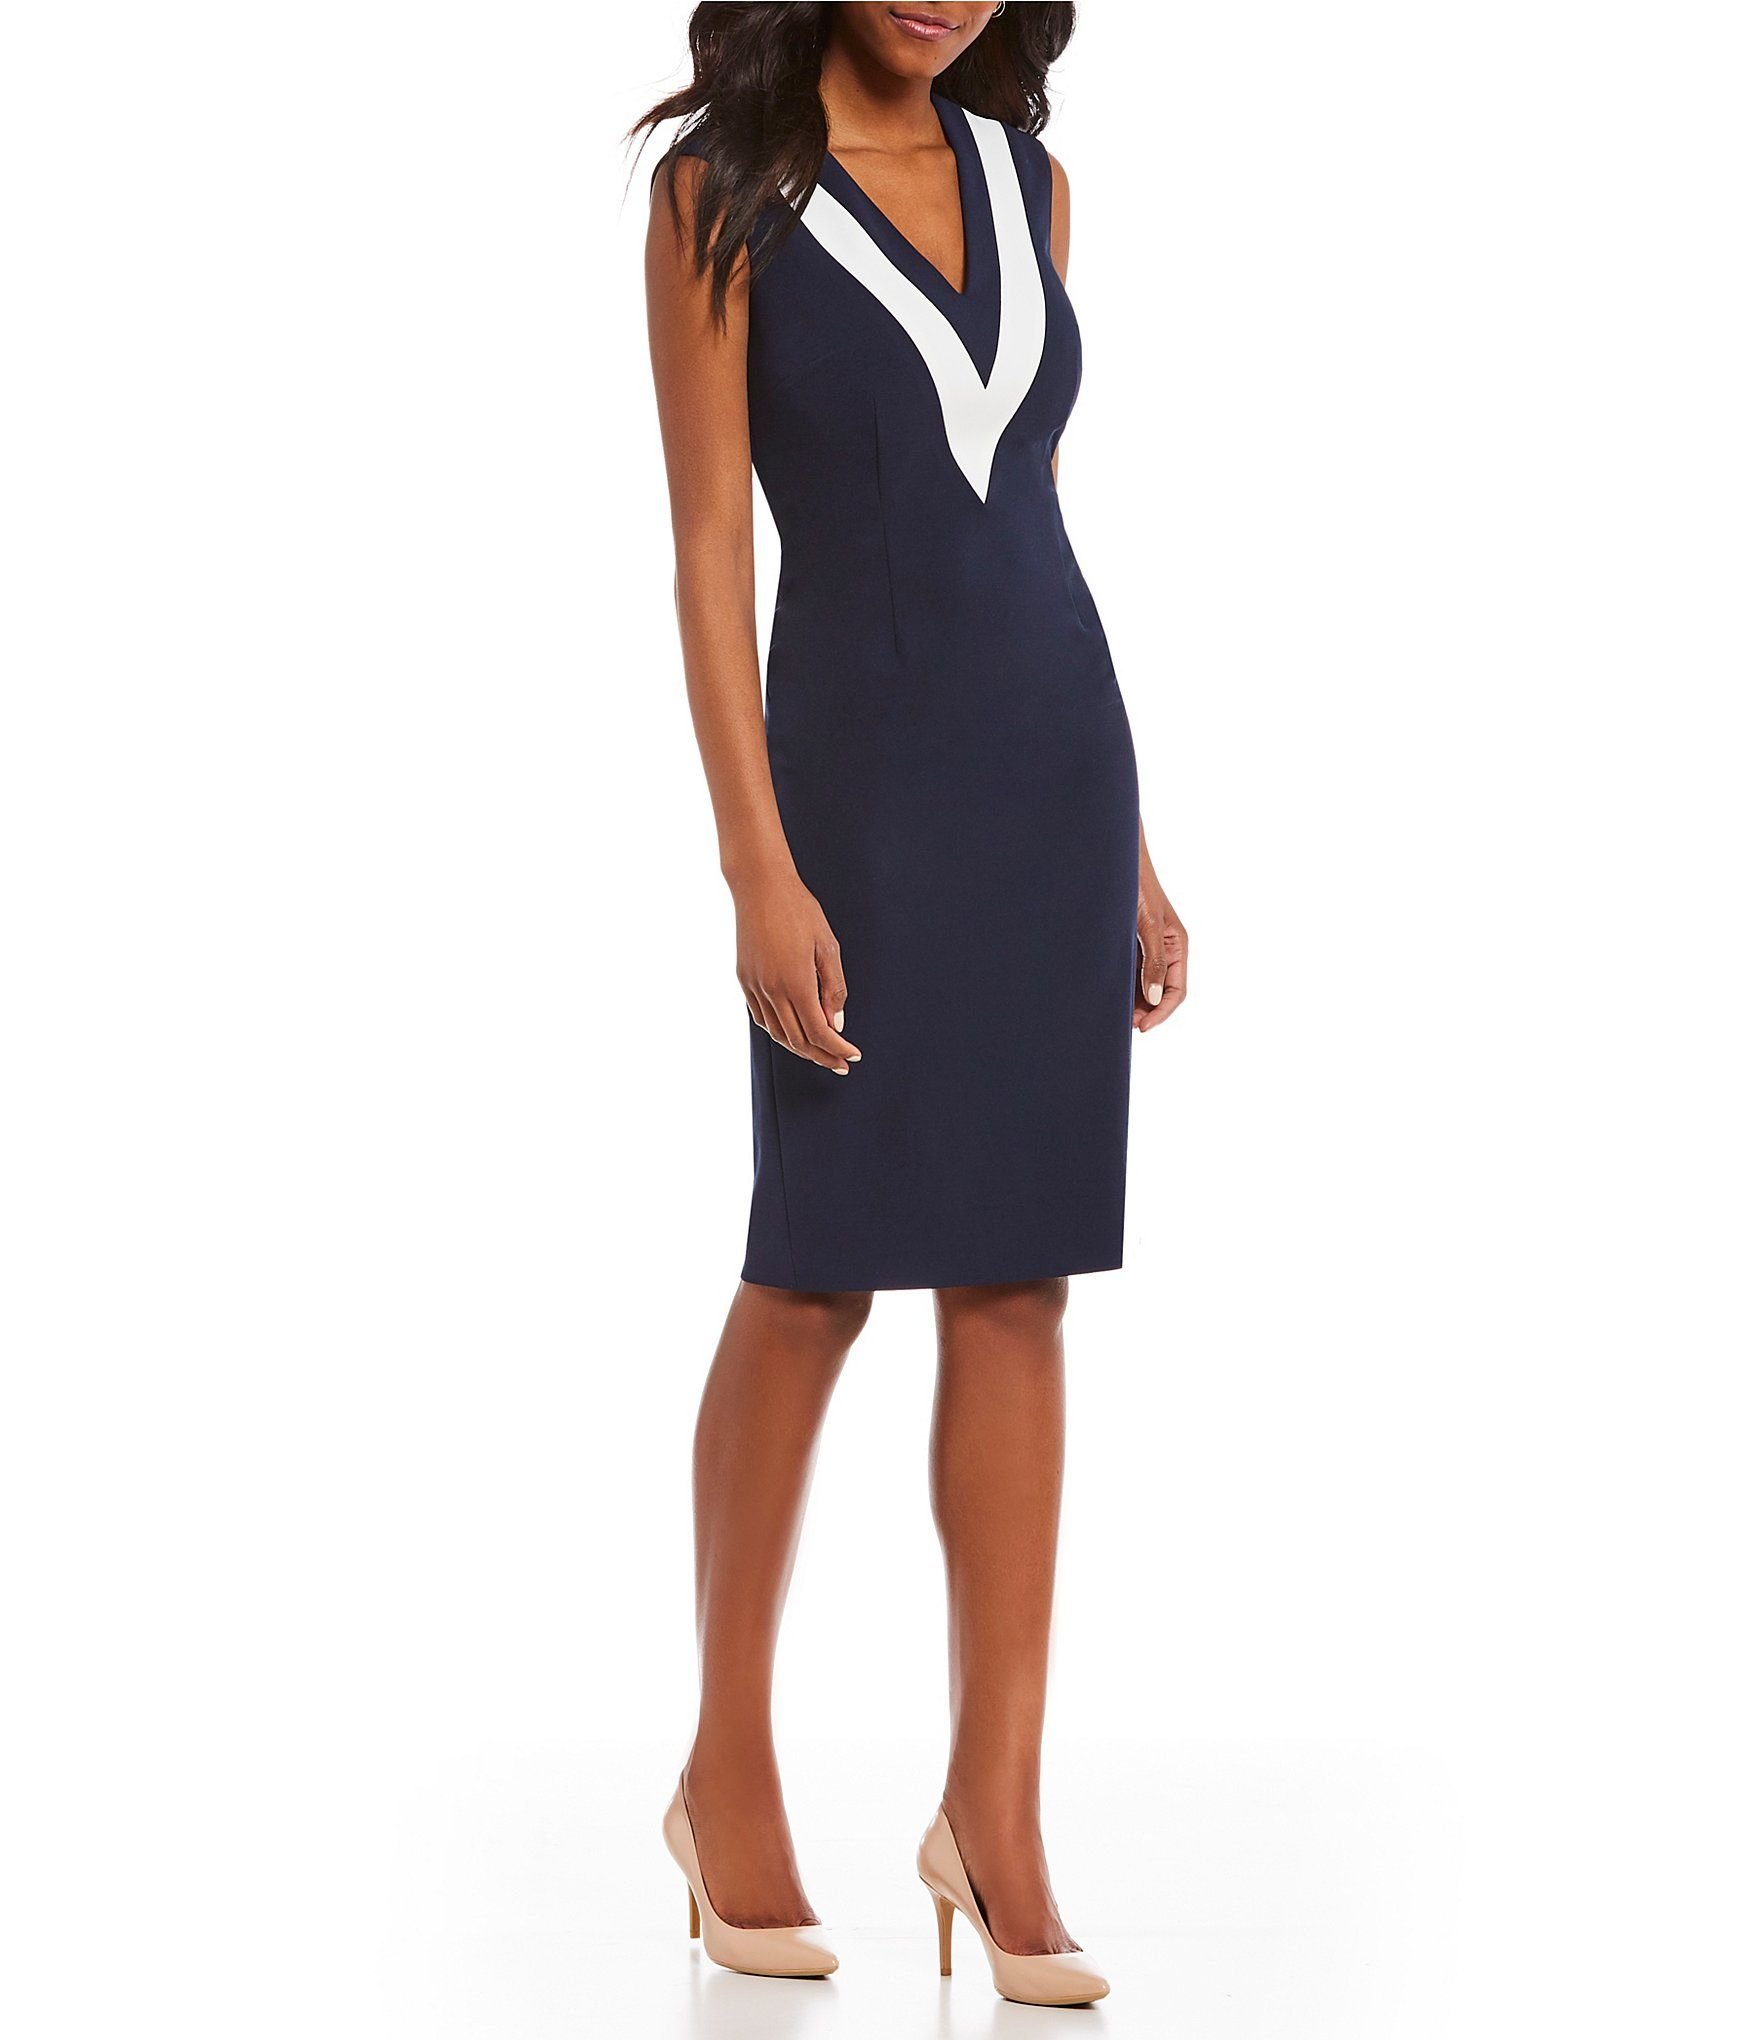 ac2c41257e Shop for Adrianna Papell Knit Crepe Color Block V-Neck Sheath Dress at  Dillards.com. Visit Dillards.com to find clothing